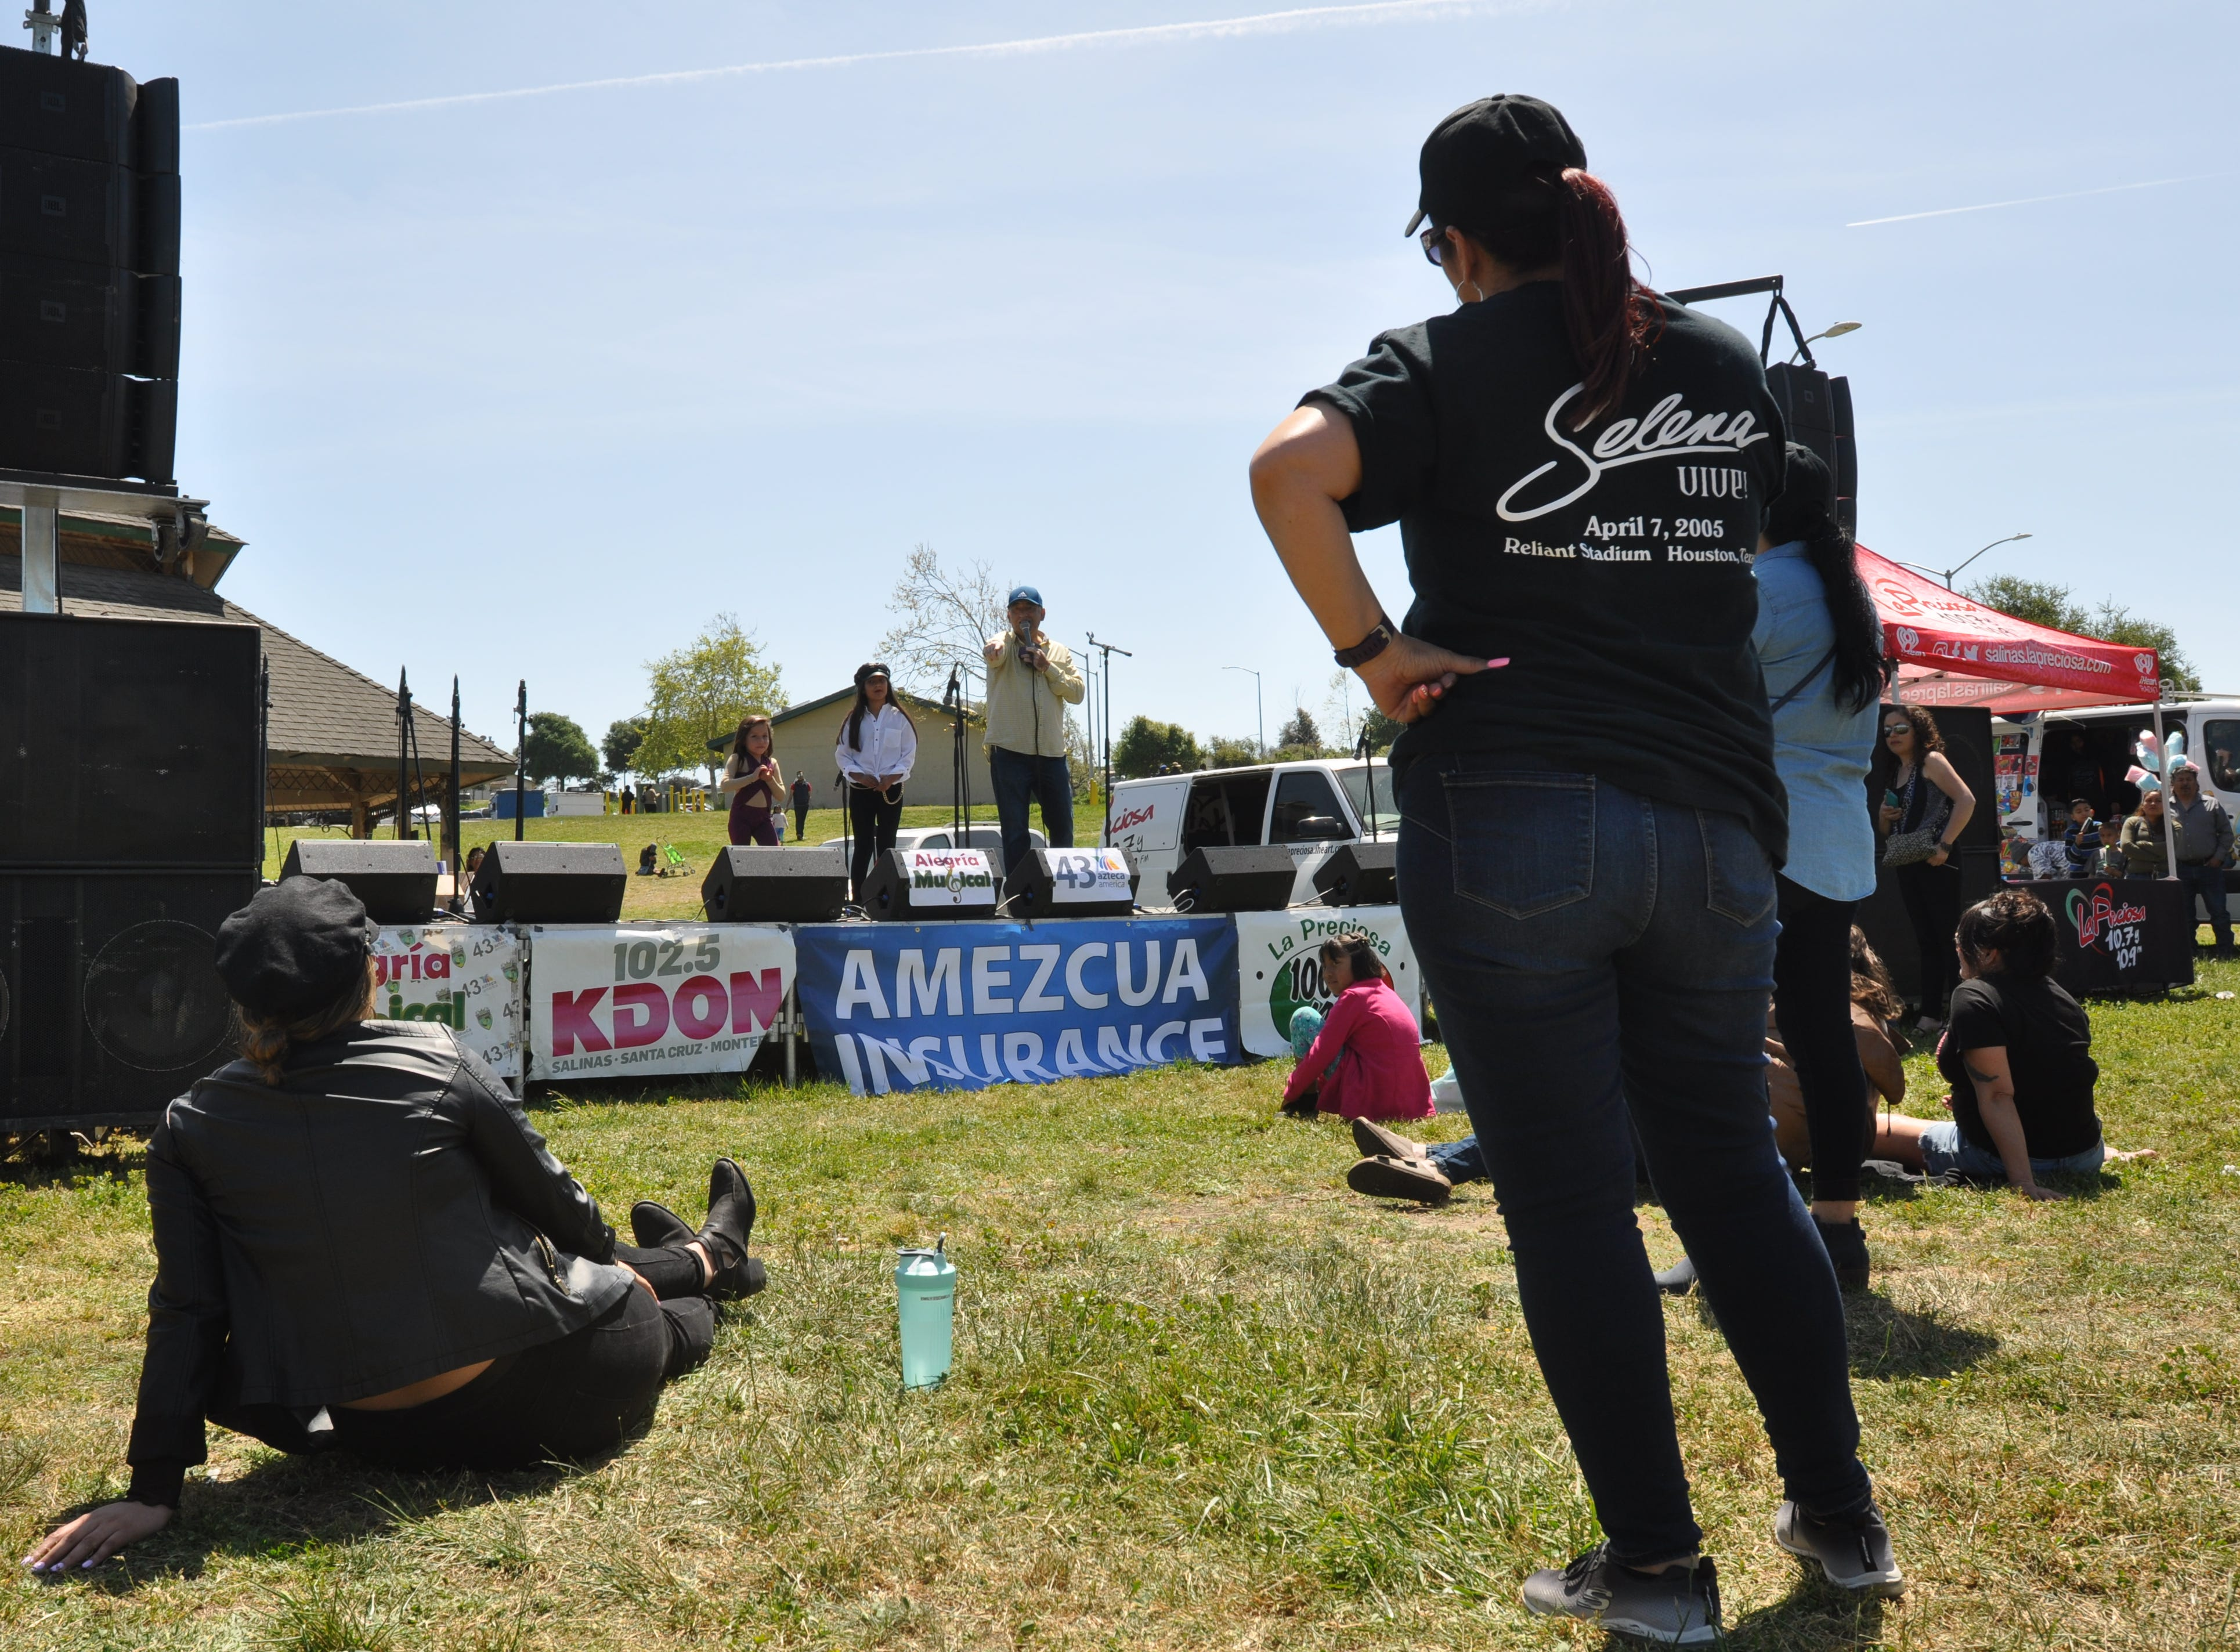 The second annual Selena Tribute Festival included vendors, performances and trivia all dedicated to the late singer, who would have turned 48 this month.